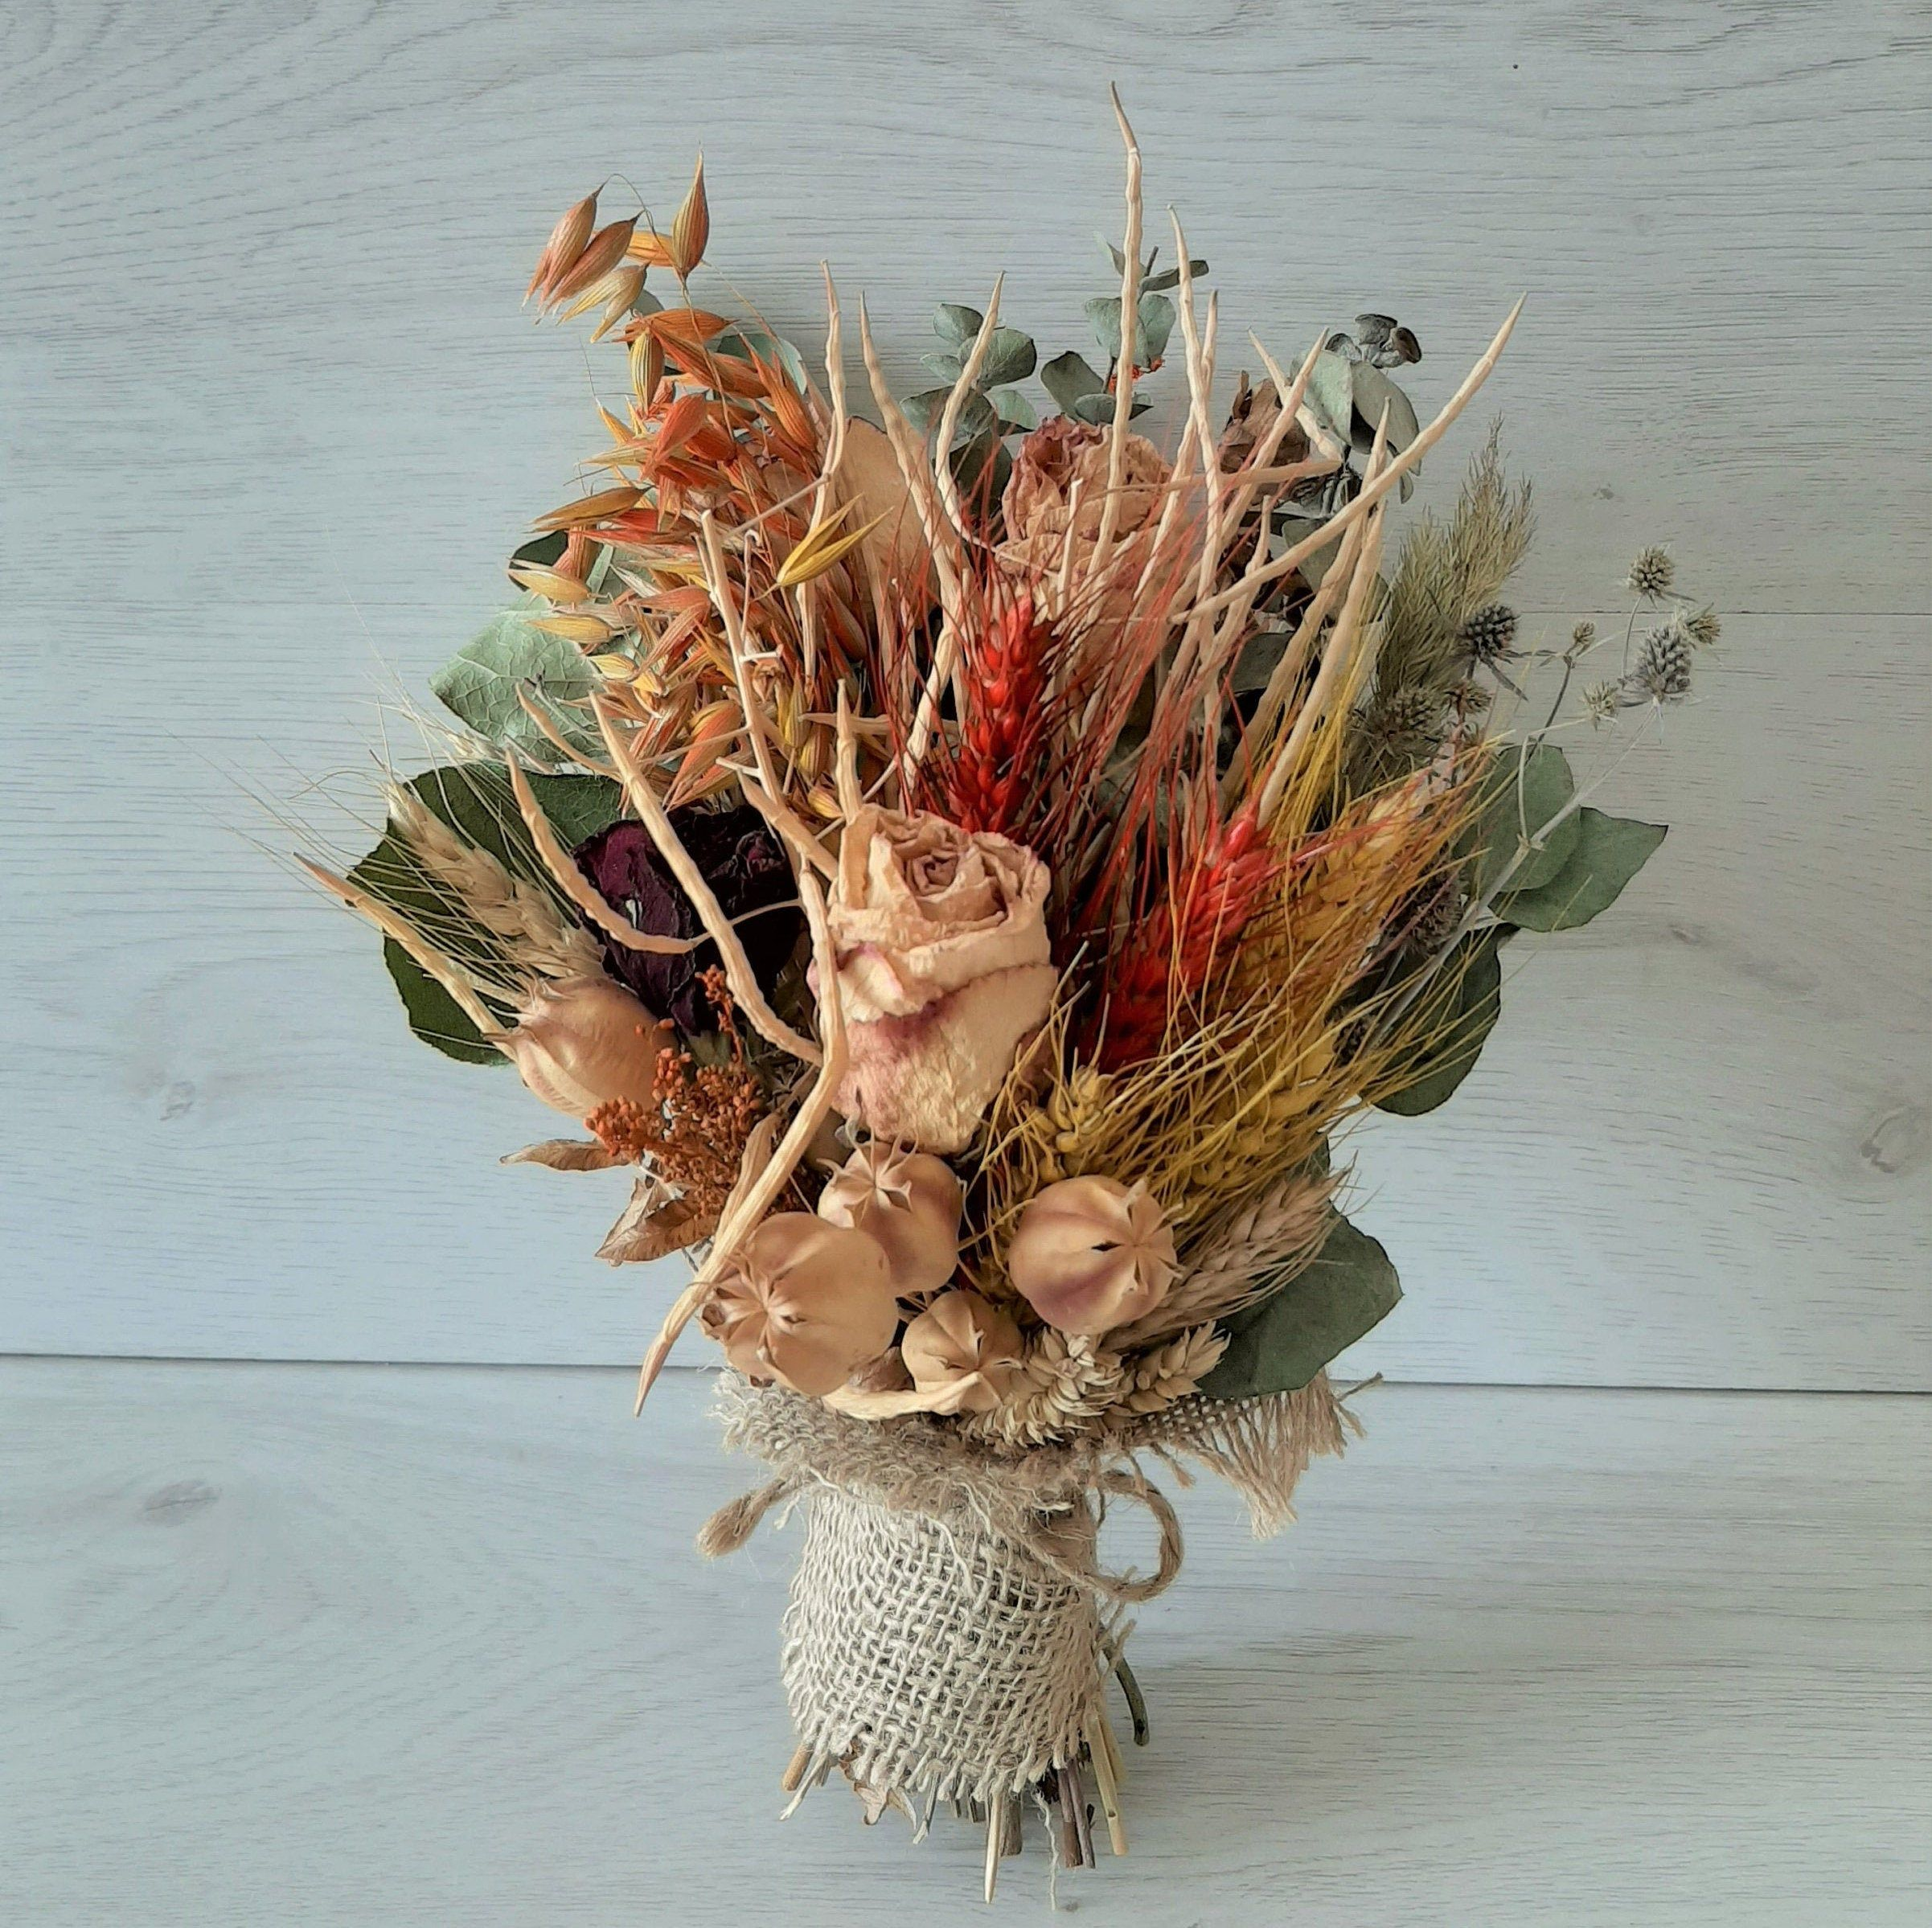 Dried Flowers Composition Dried Bouquet Natural Flowers Composition Dry Flowers Decor Bouquet Seche Bouquet De Fleurs Sechees In 2020 Dried Bouquet Drying Roses Dried Flowers